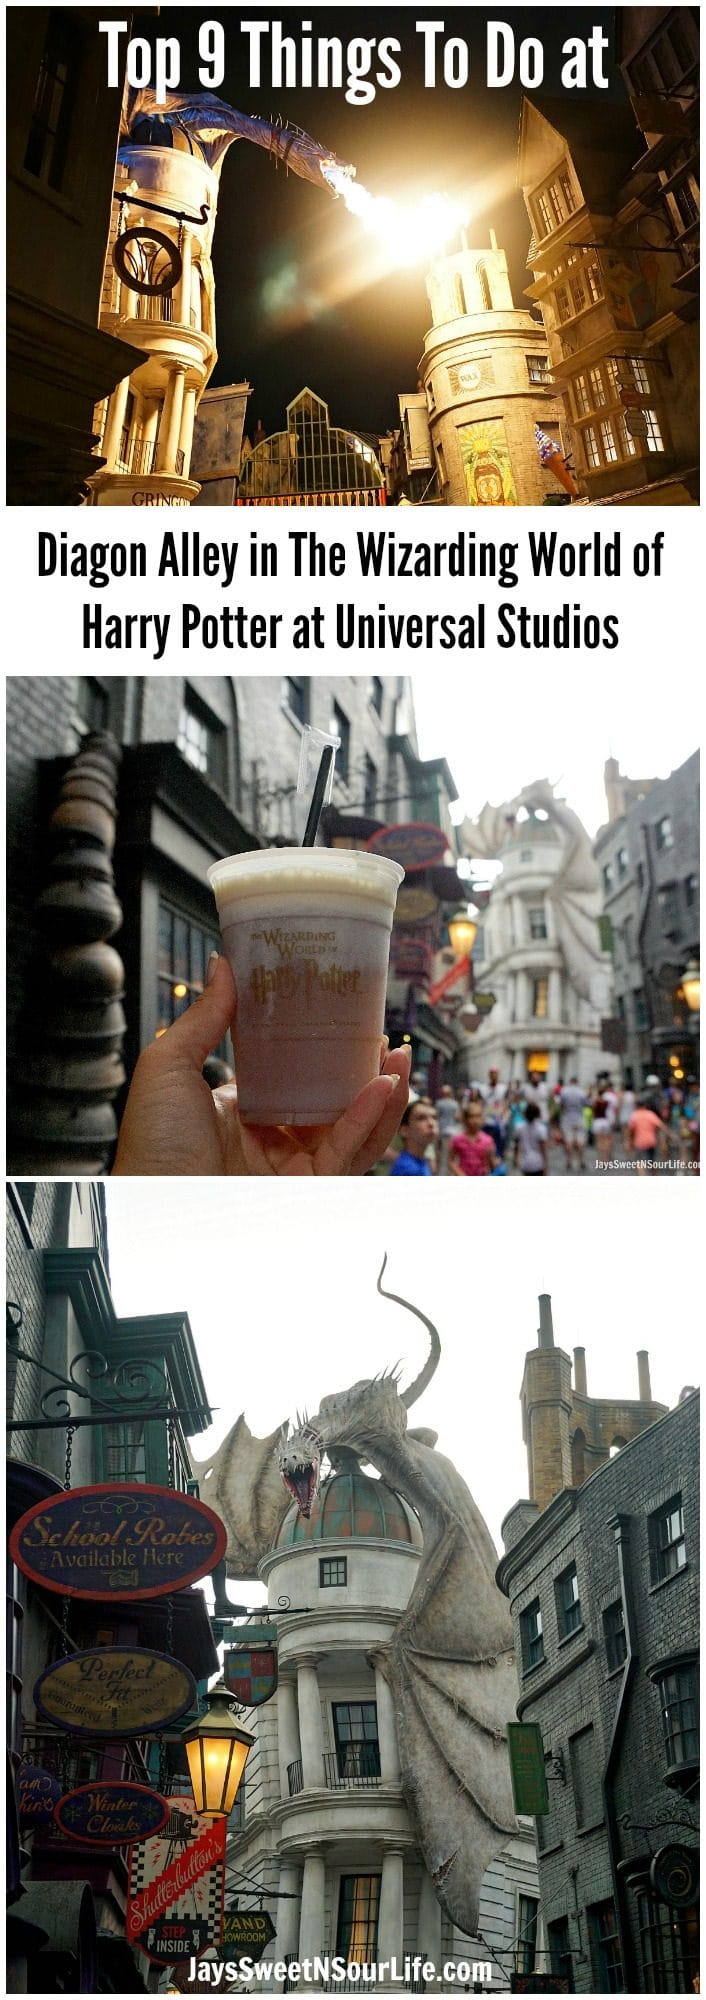 My full list of Top 9 Things To Do at The Wizarding World of Harry Potter at Universal Studios Florida. Explore the Wizarding World of Harry Potter at Universal Studios using my guide.